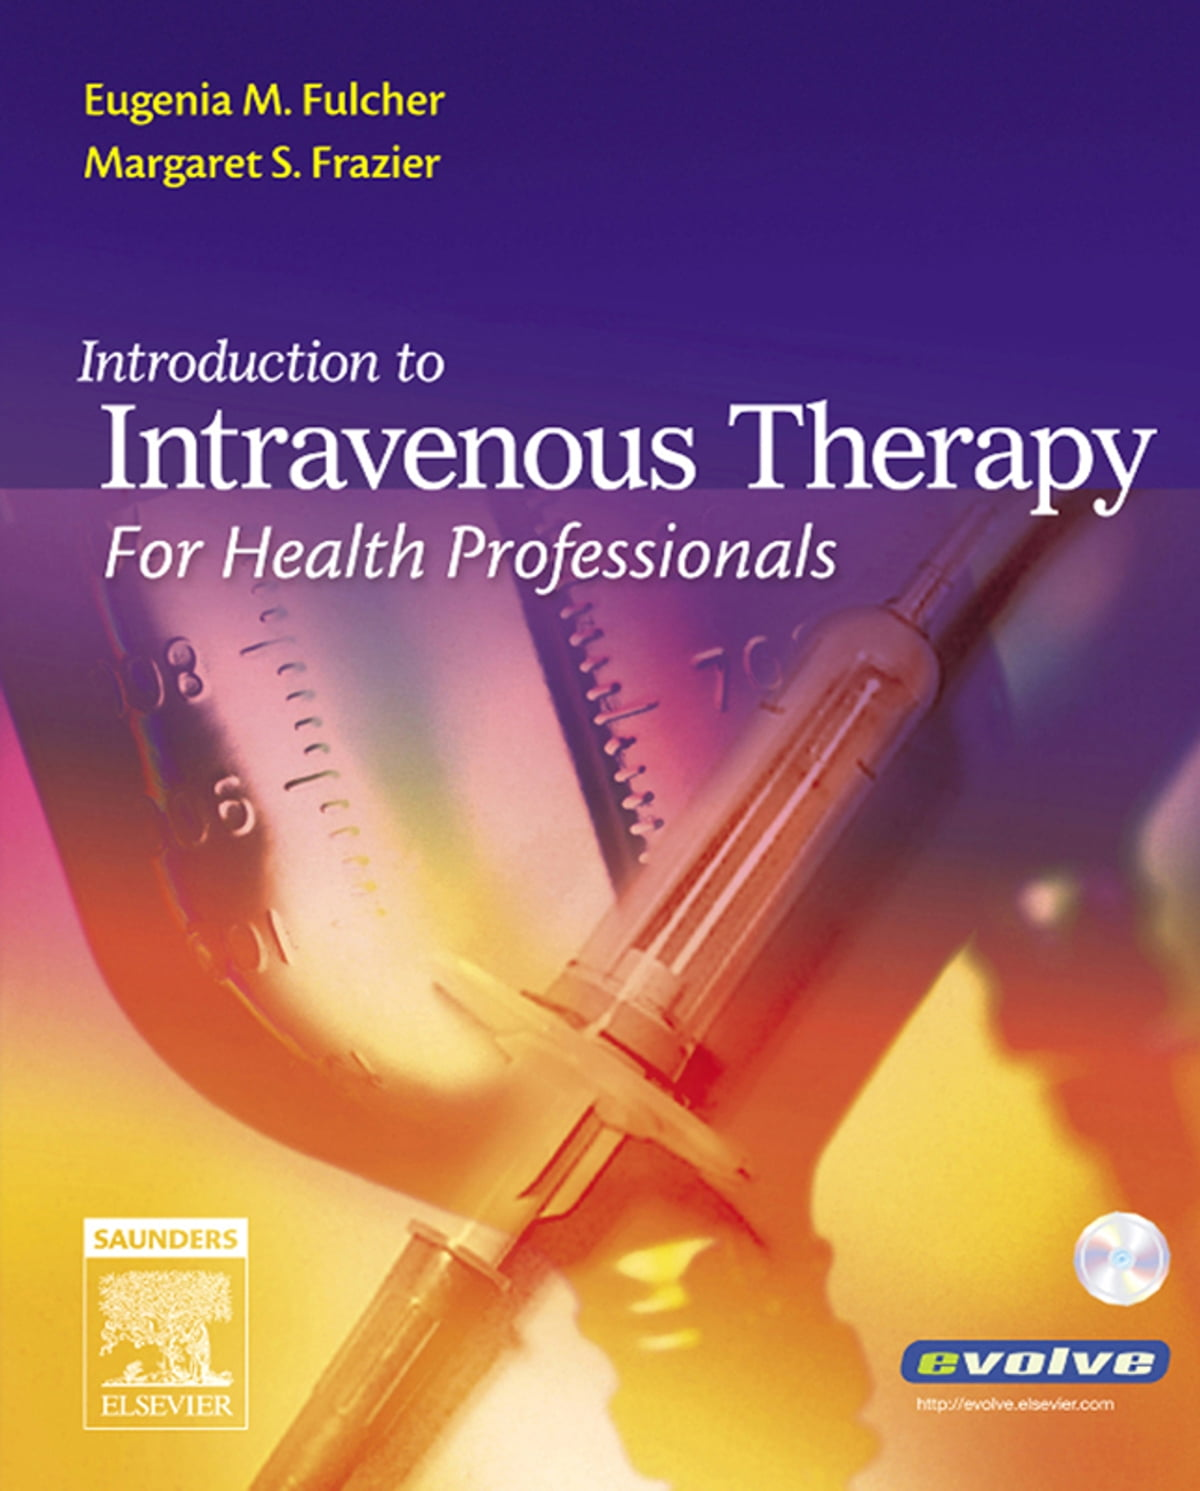 Introduction to Intravenous Therapy for Health Professionals - E-Book eBook  by Eugenia M. Fulcher, BSN, MEd, EdD, RN, CMA (AAMA) - 9780323277709 |  Rakuten ...